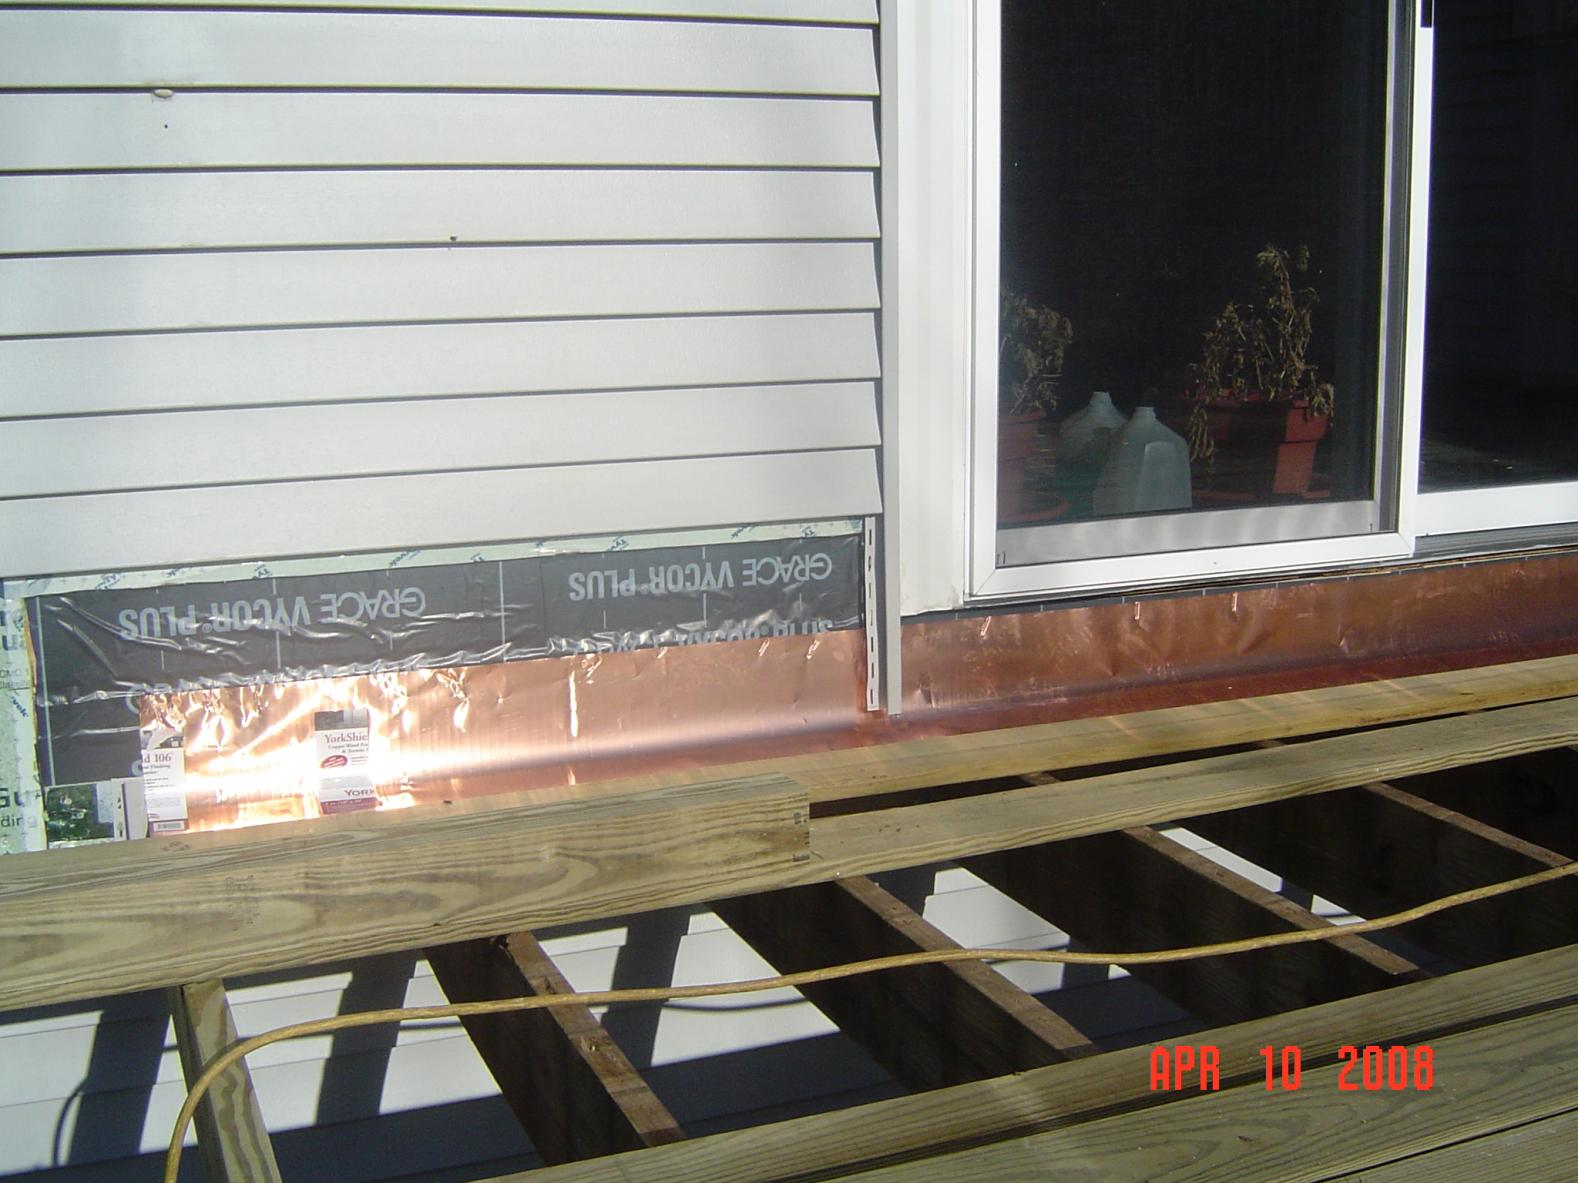 Vinyl deck ledger flashing